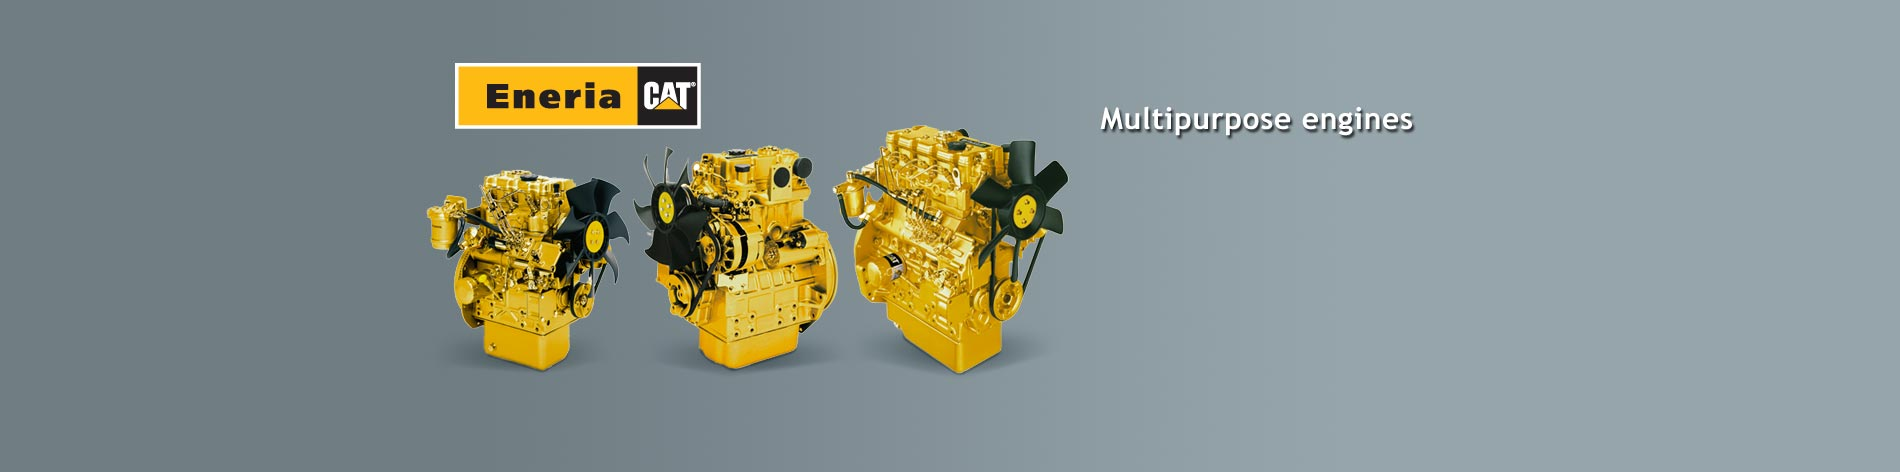 We offer you the complete line of Caterpillar diesel engines in many different versions.